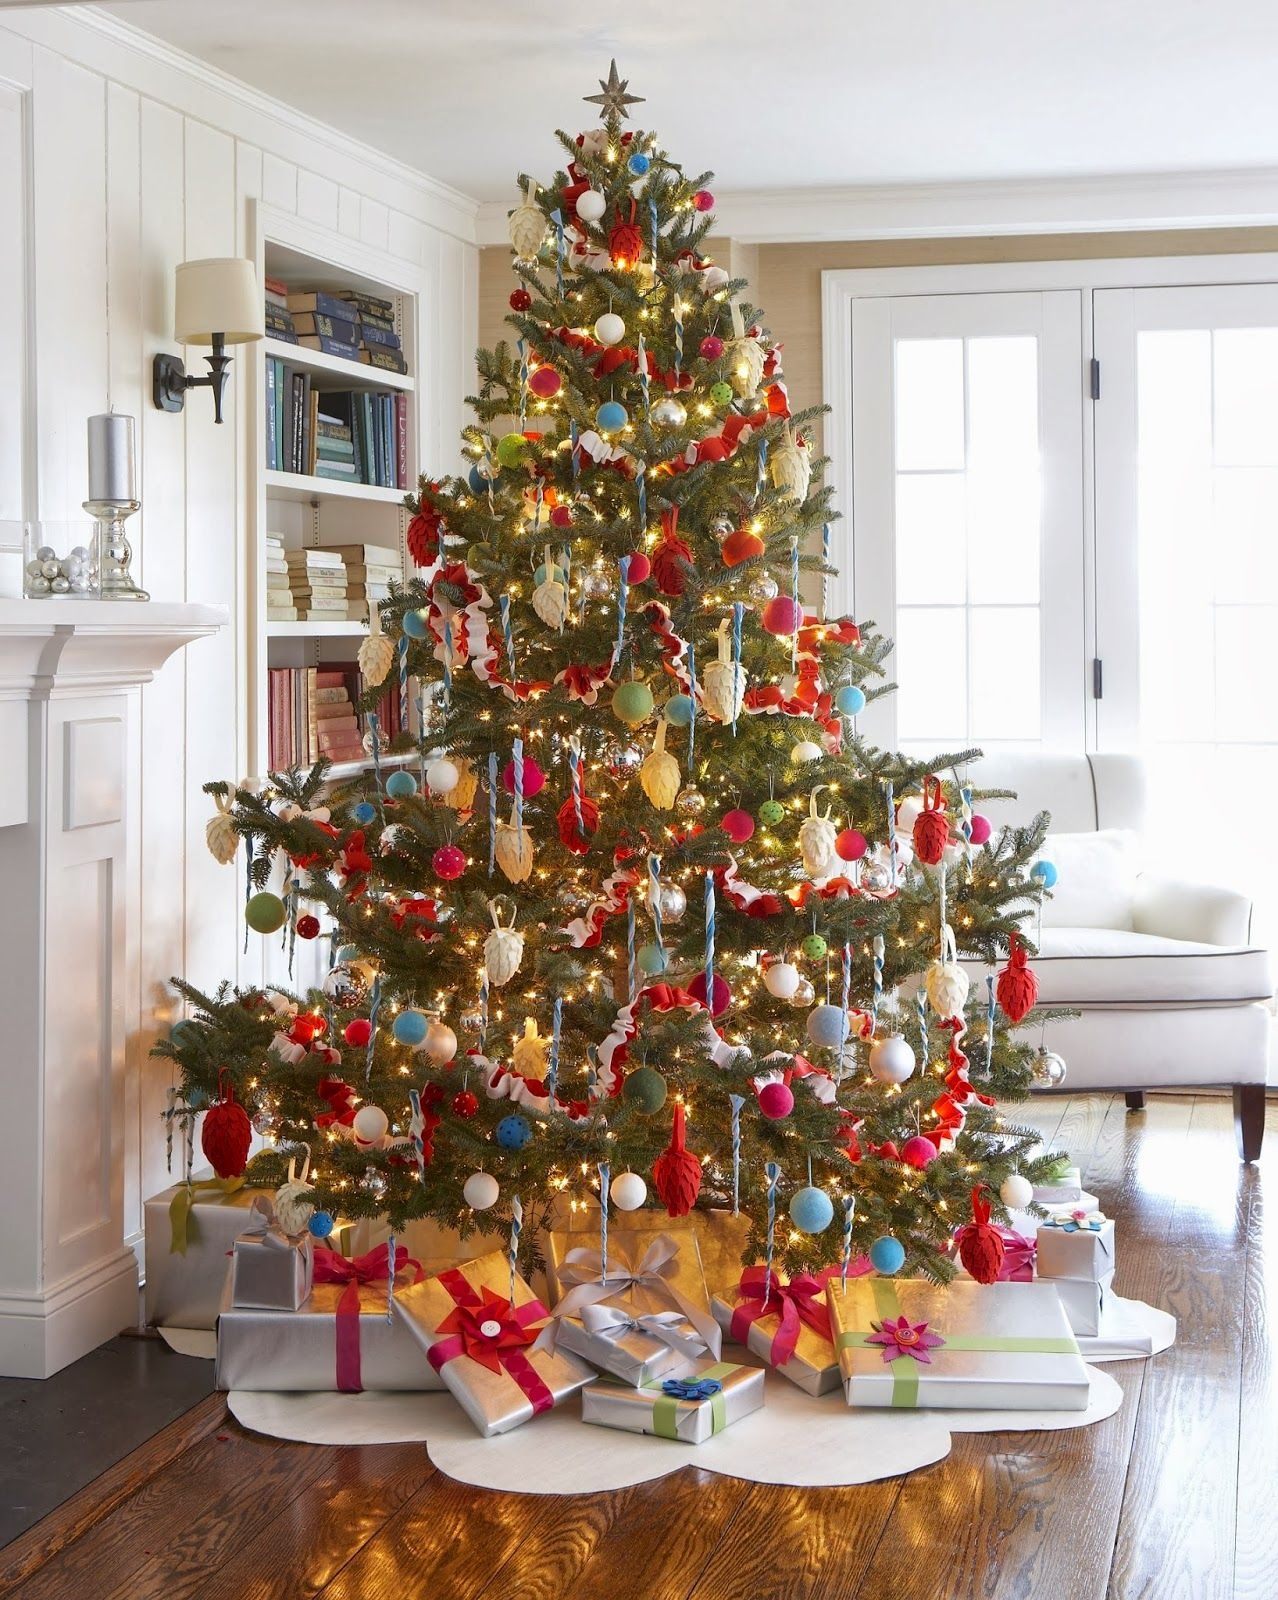 Christmas Tree Of Felt Crafts Designed By Karin Lidbeck For